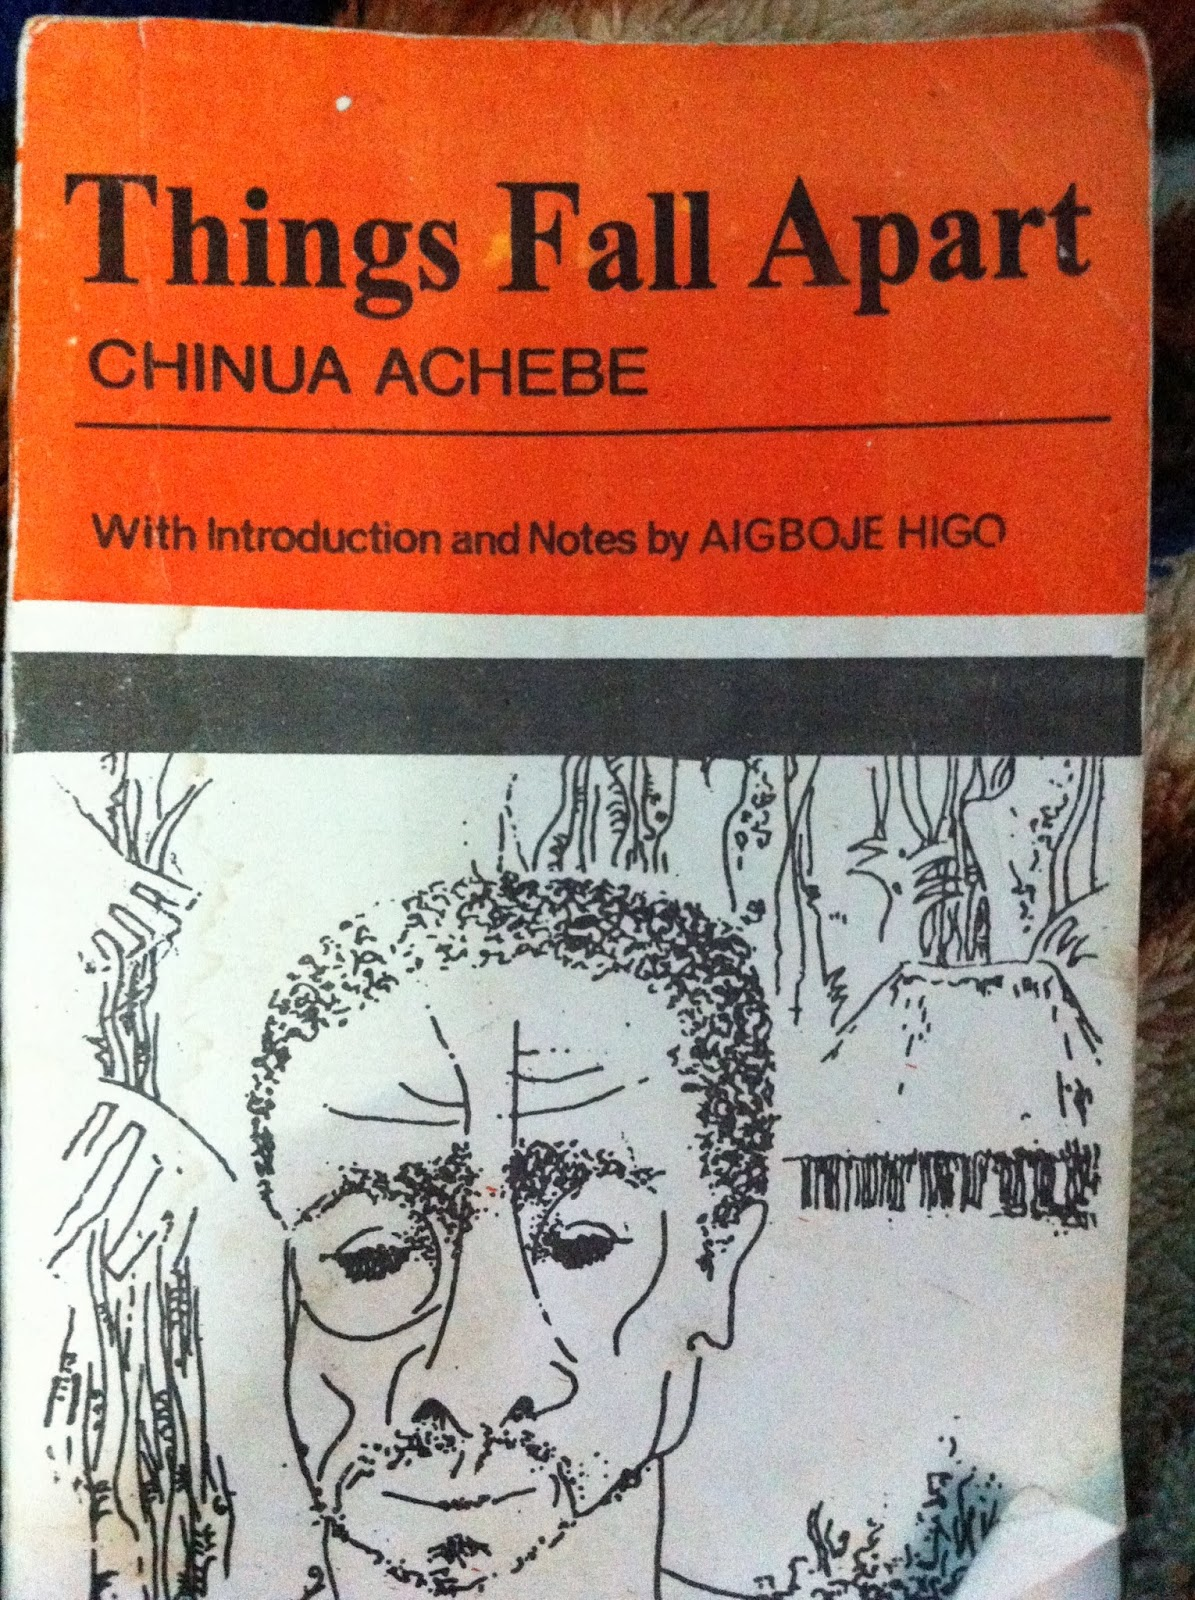 a review of the things fall apart a novel by chinua achebe This summer (august 2005) i picked up things fall apart, that famous novel by chinua achebe — first published 47 years ago in 1958 — and read it again, perhaps for the twentieth or perhaps hundredth time i do not remember the last time, before now, when i read that book, but it had to have been at least twenty years.